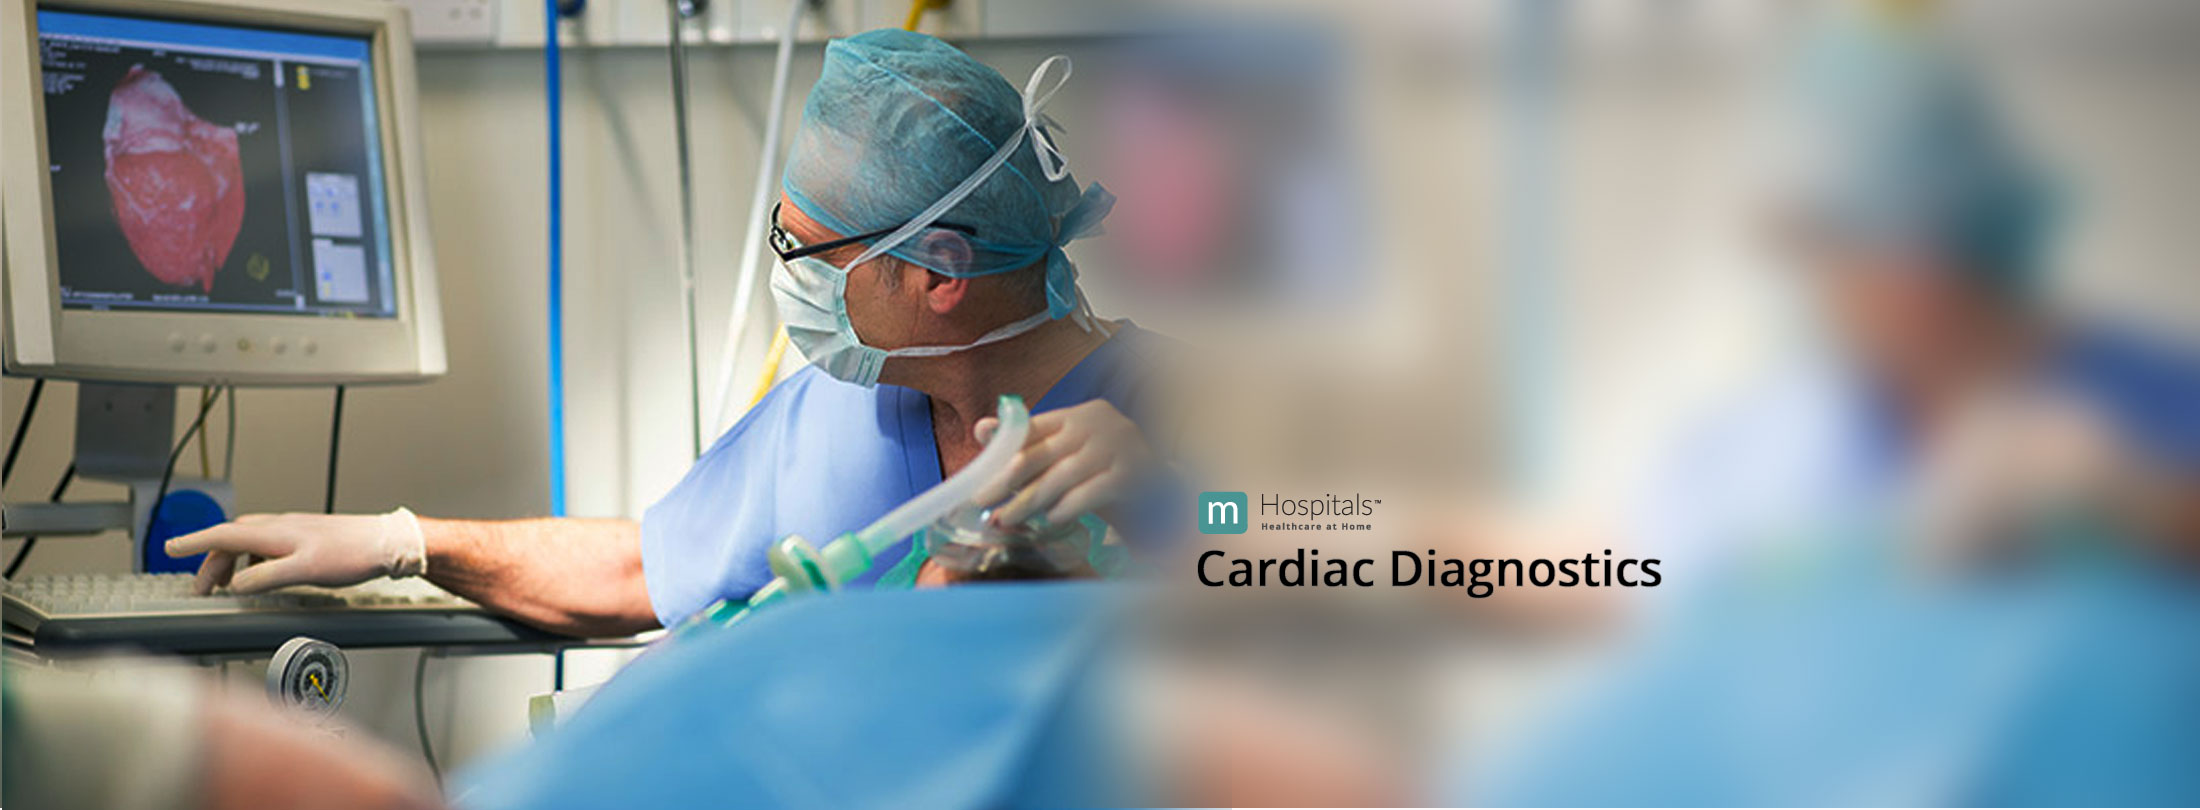 Cardiac care services & treatment for complex cardiovascular diseases